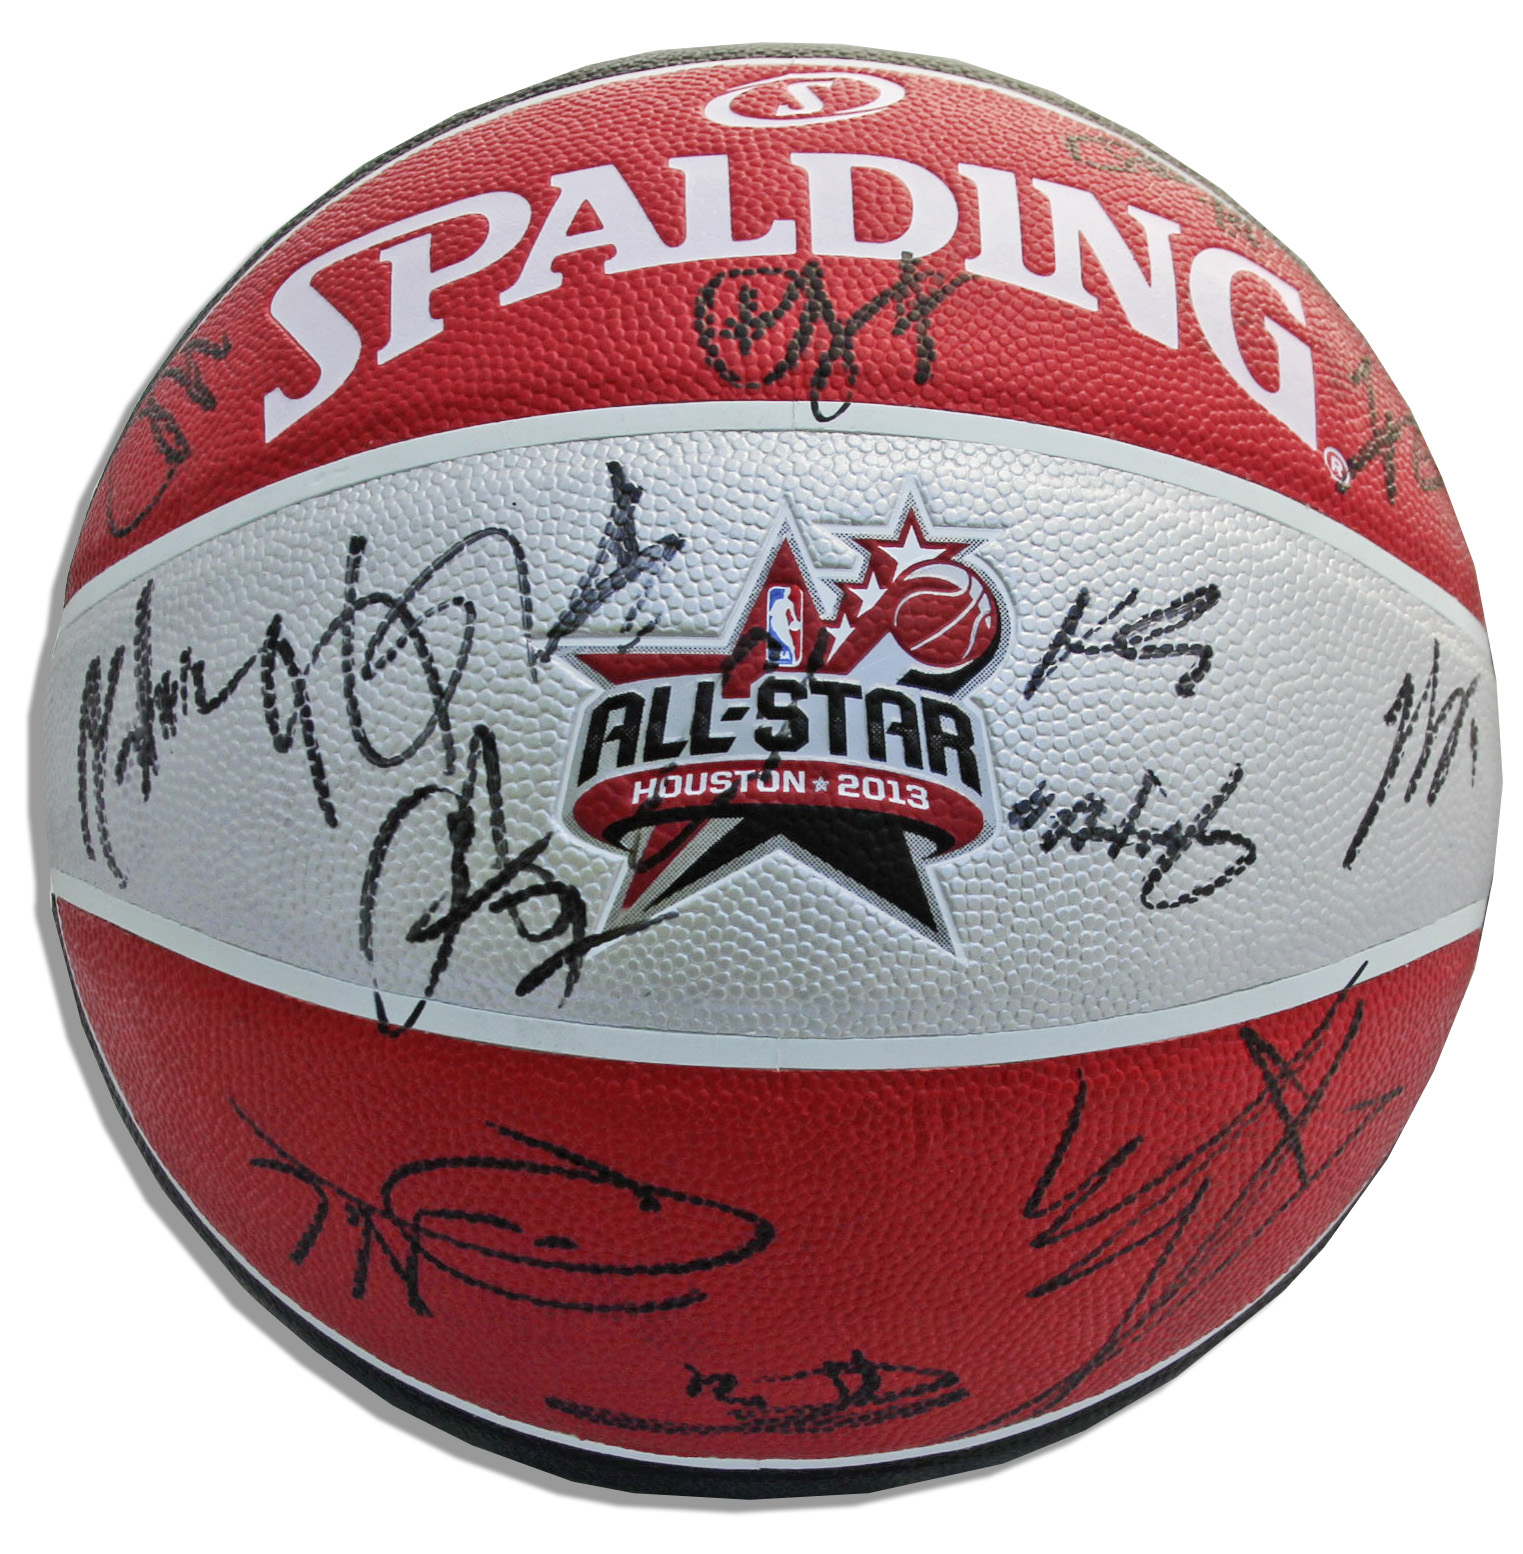 new style a02ea ac657 Lot Detail - NBA 2013 All-Star Basketball Signed by 24 ...